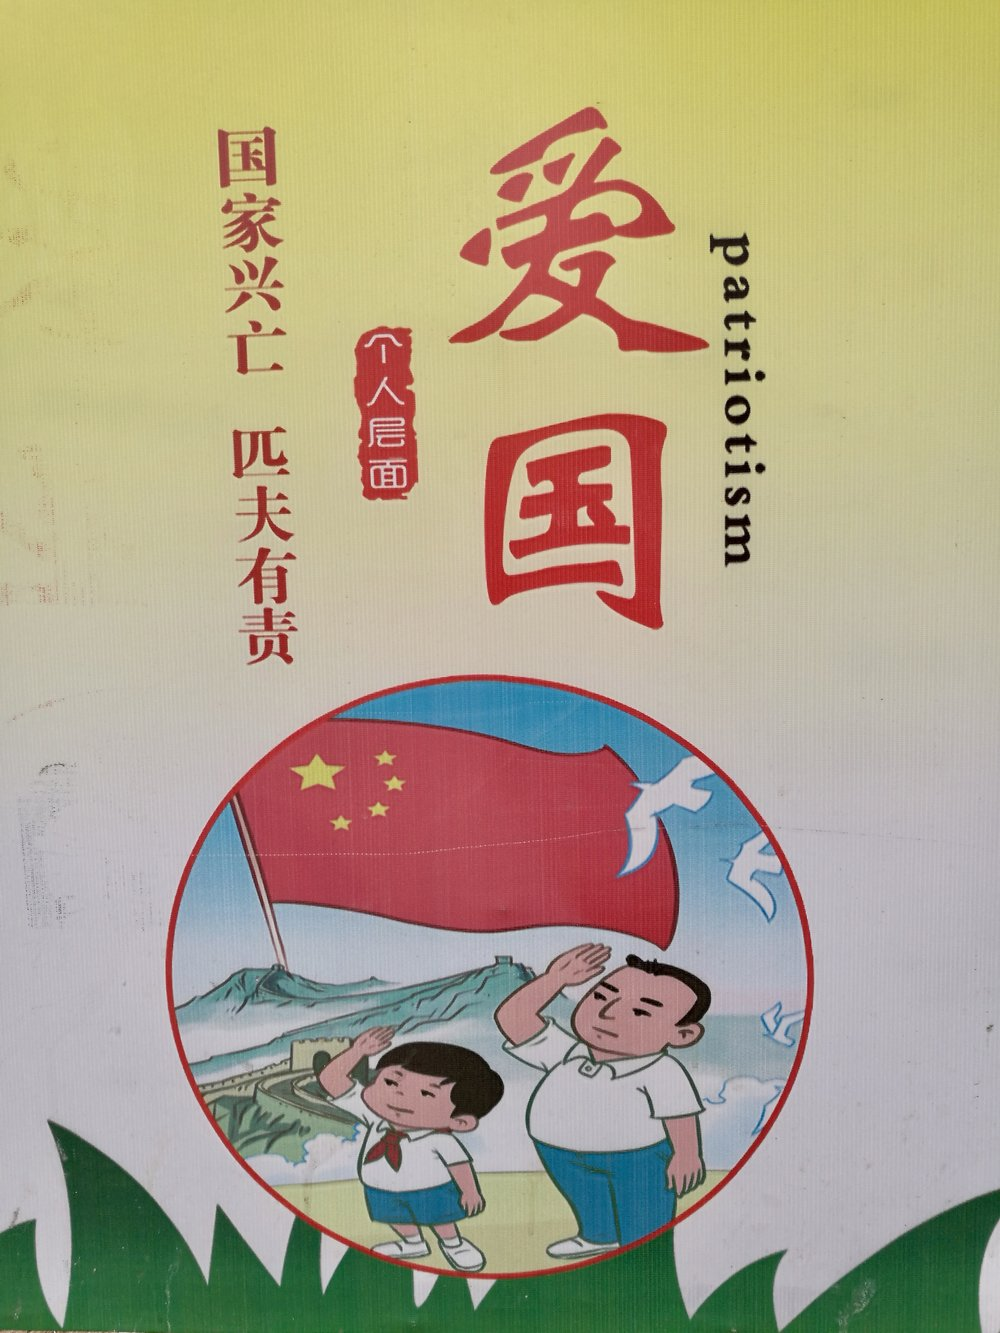 Poster on a wall in Chaoyang district, Beijing, June 2016. Photo by the author.